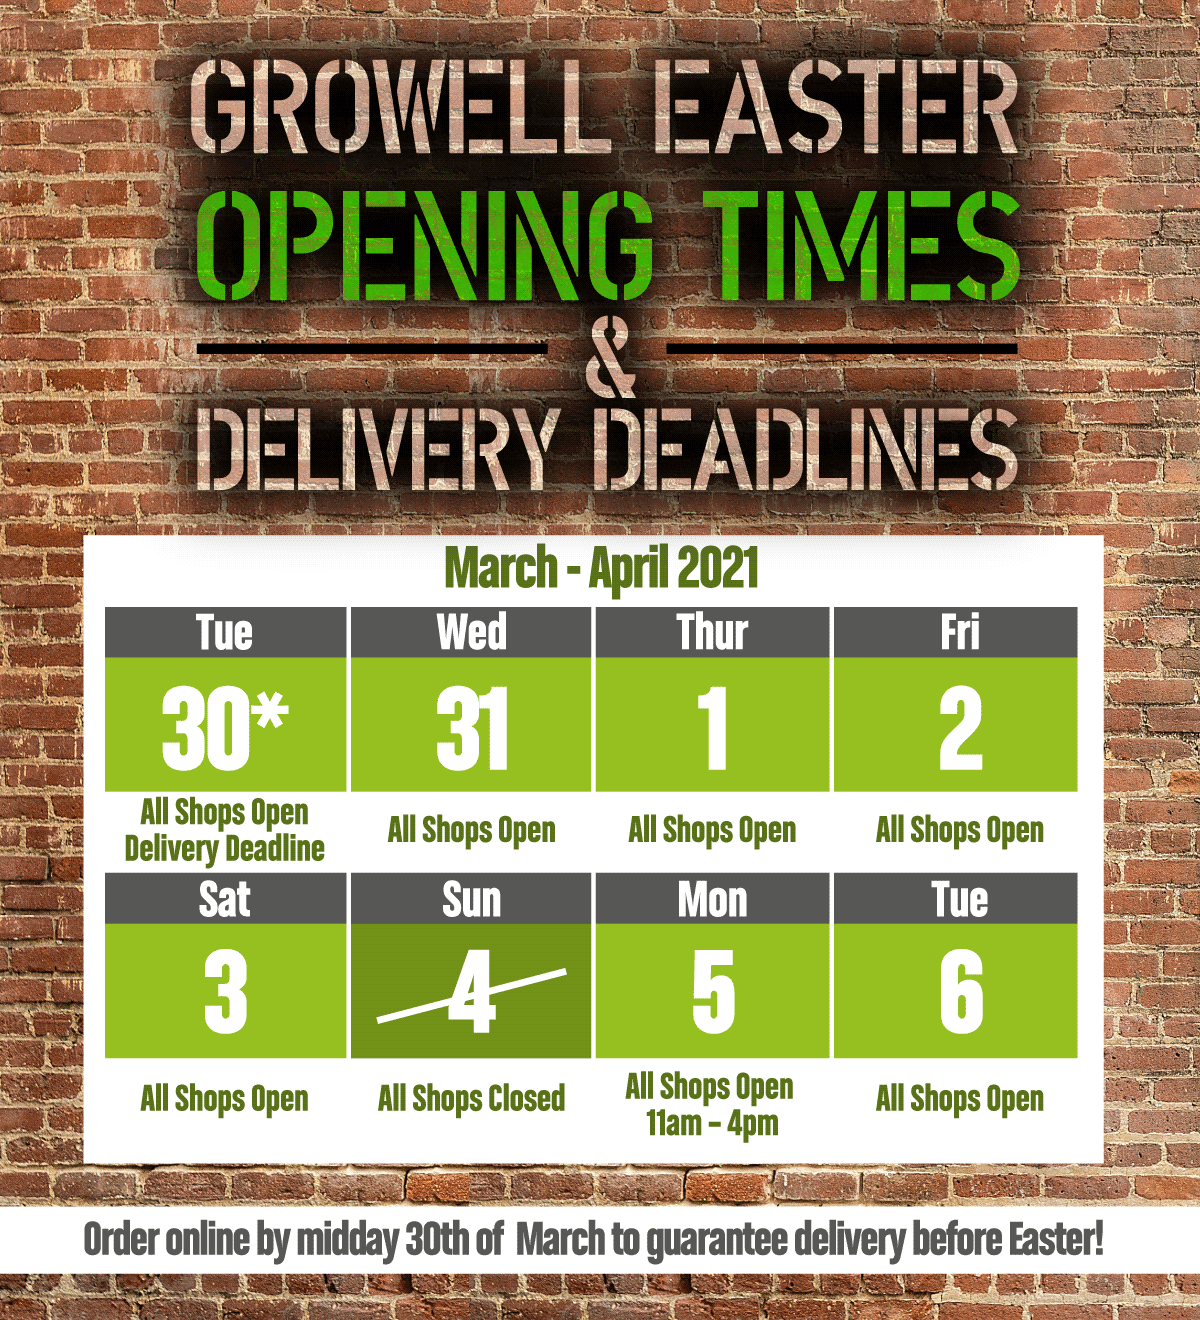 Easter Opening Times & Delivery Deadlines